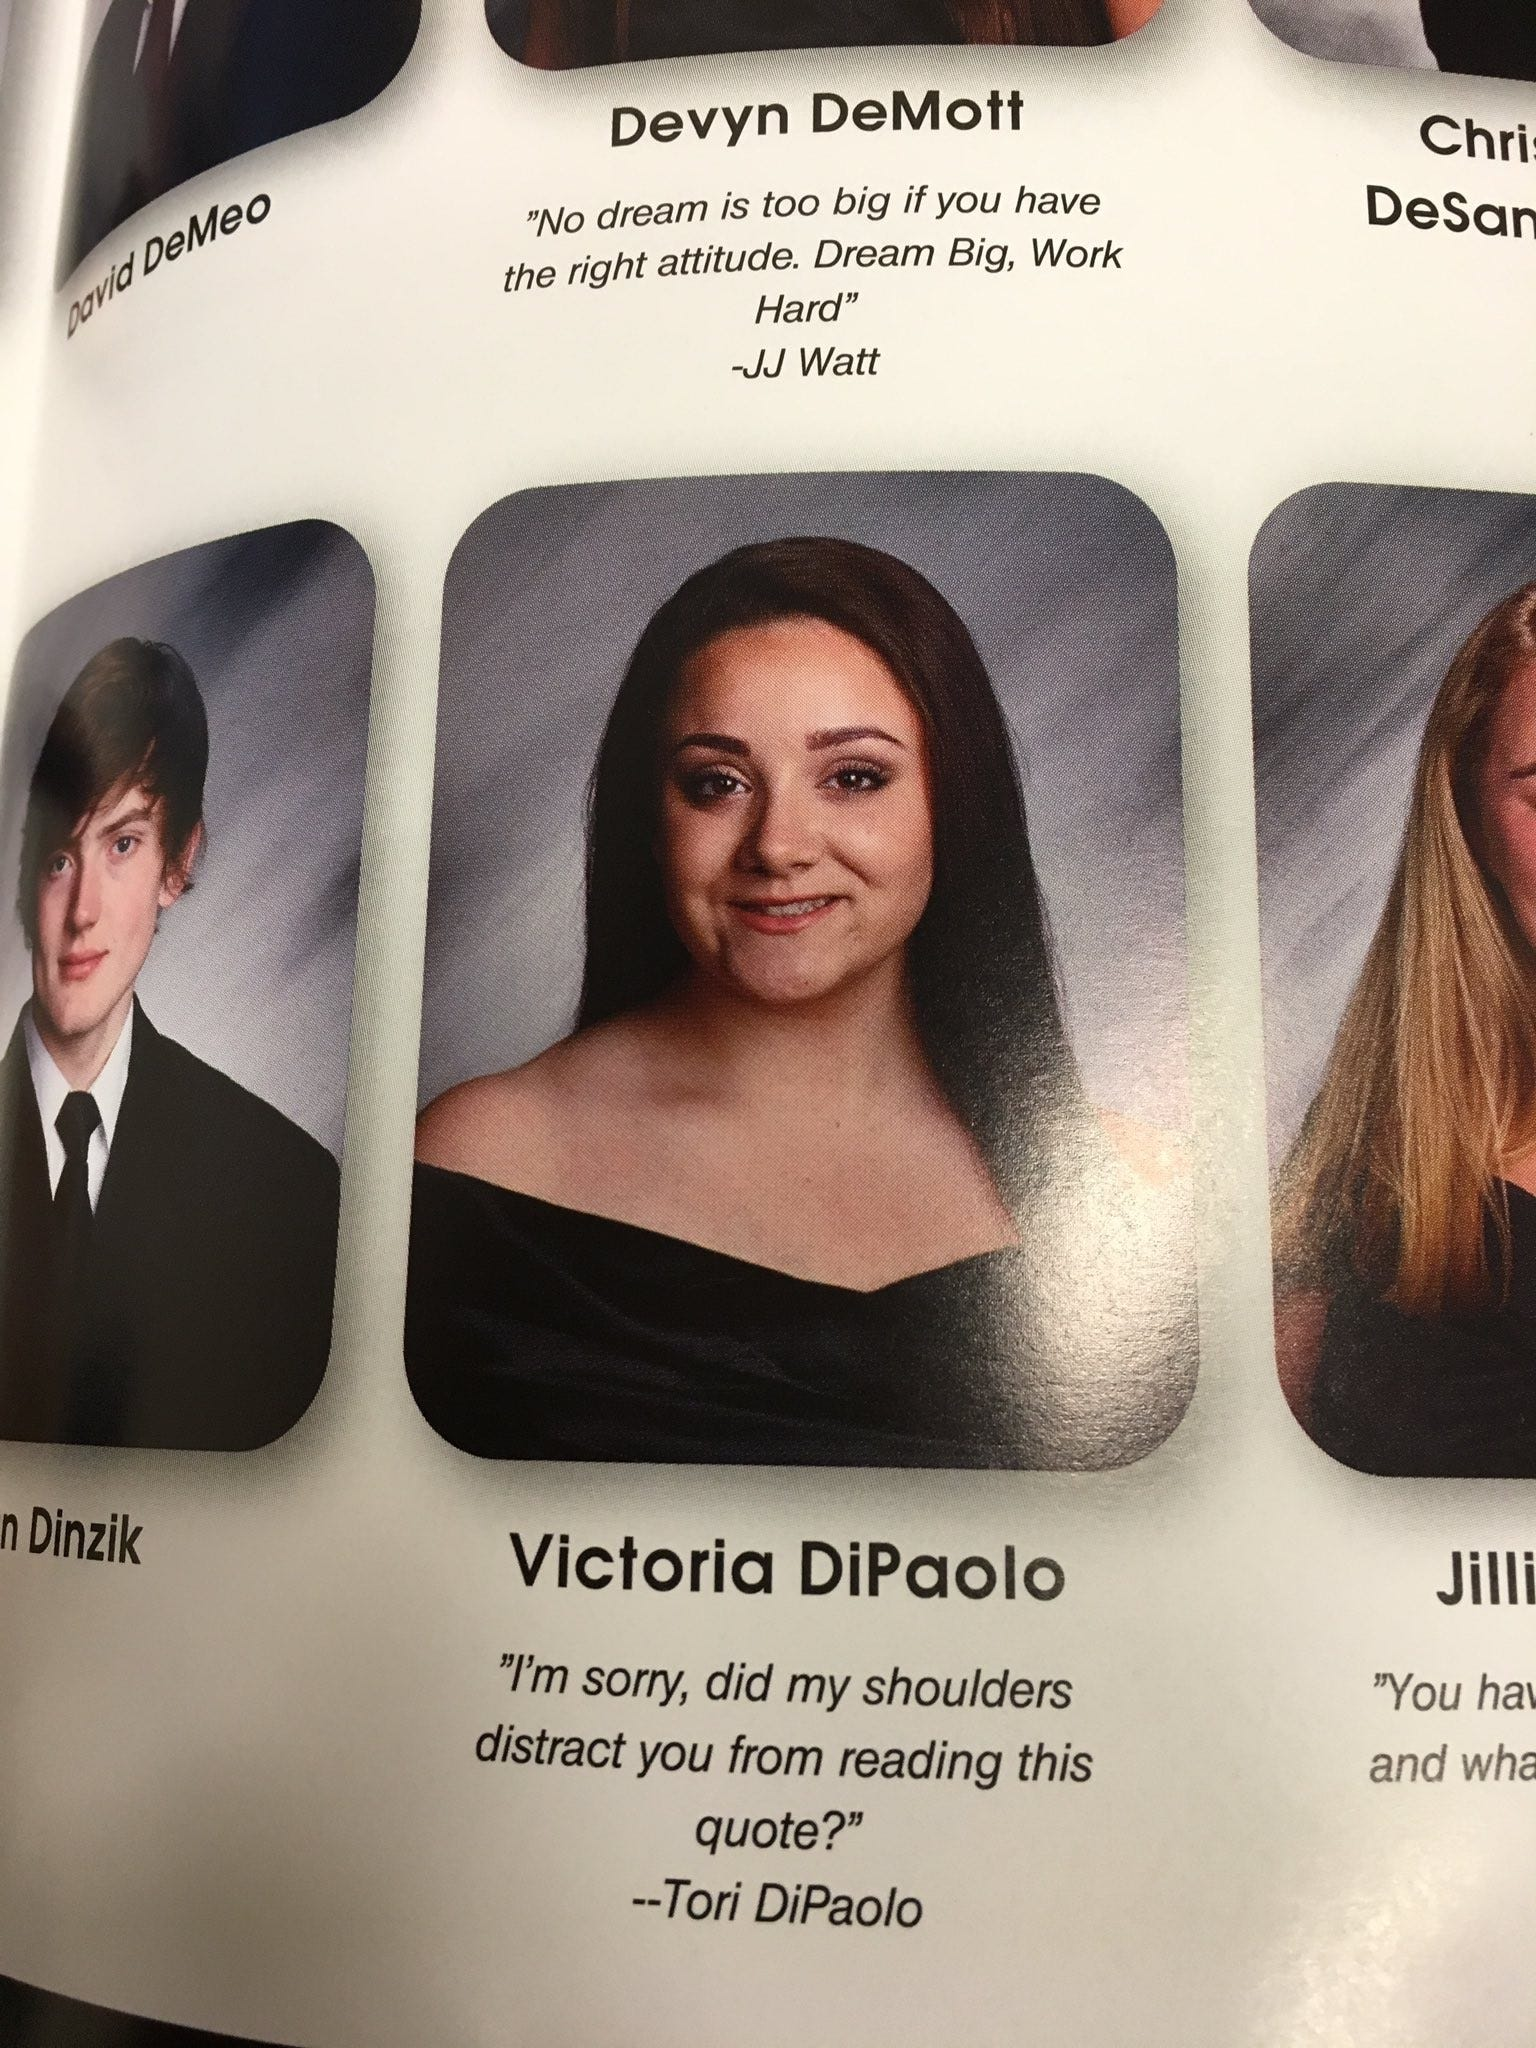 yearbook quote puts west milford senior in spotlight